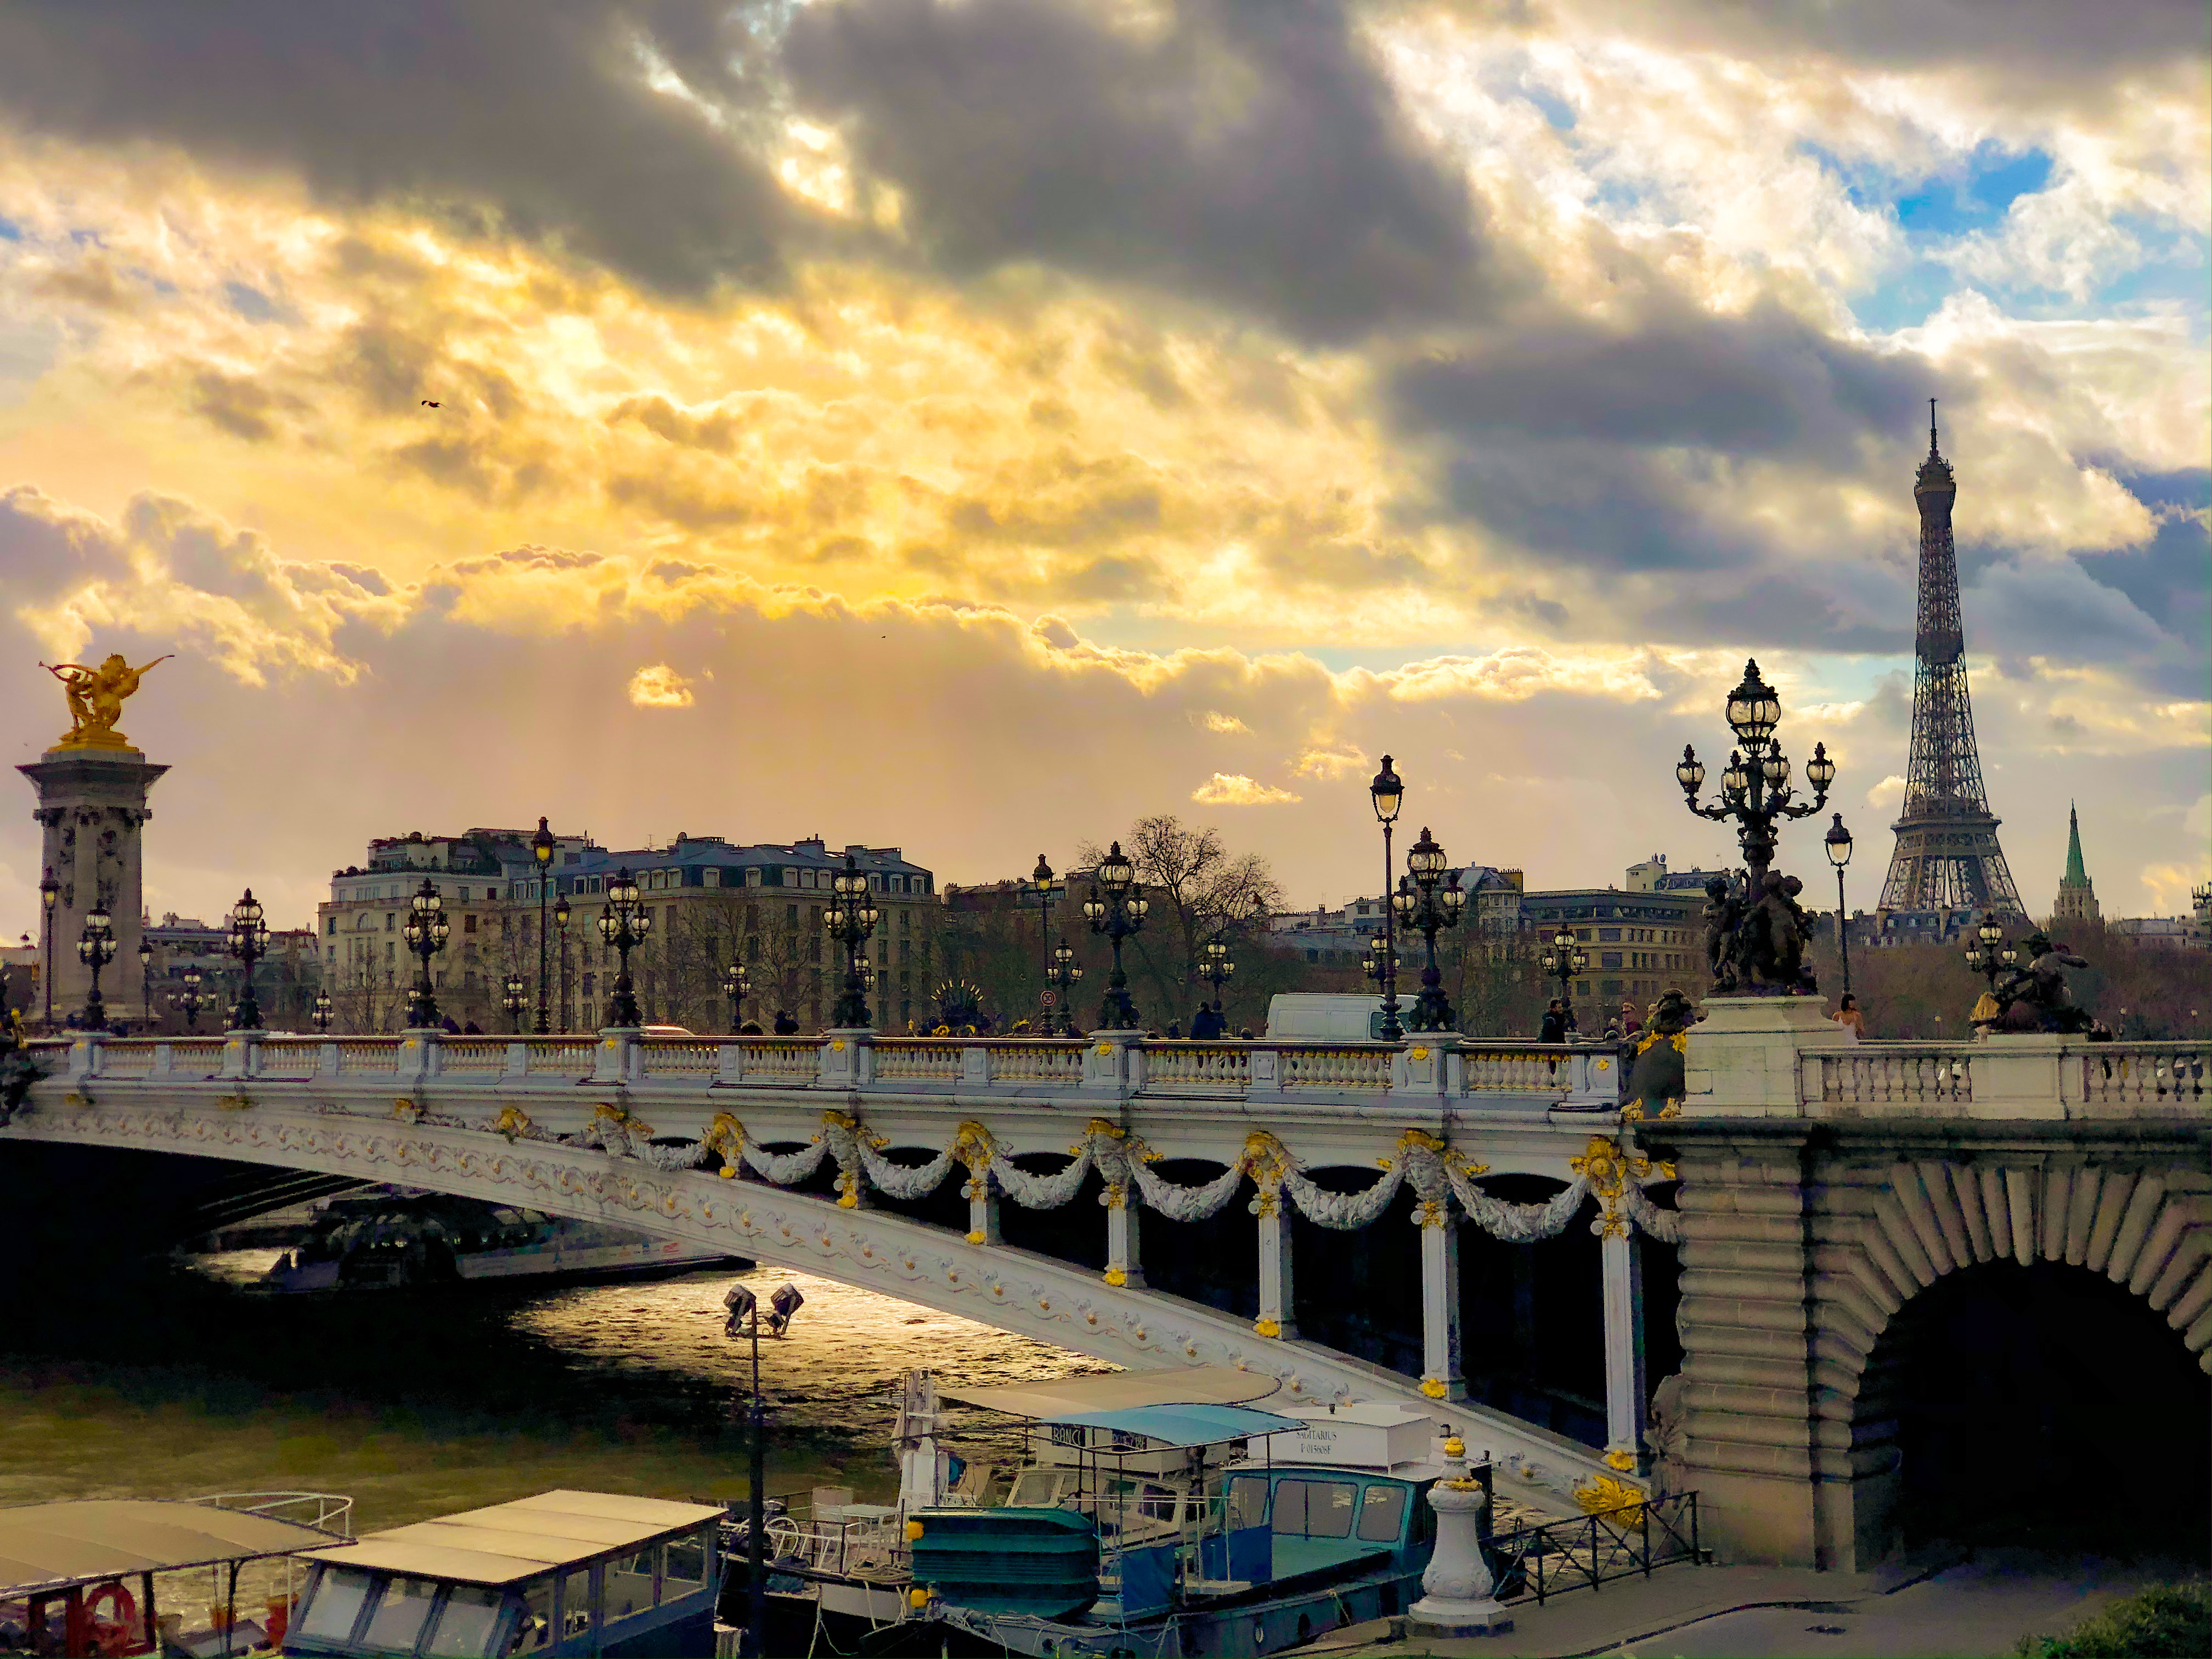 The Seine and a bridge at dusk, with the Eiffel towel in the background is part of what HEC Paris MBA students see in Europe